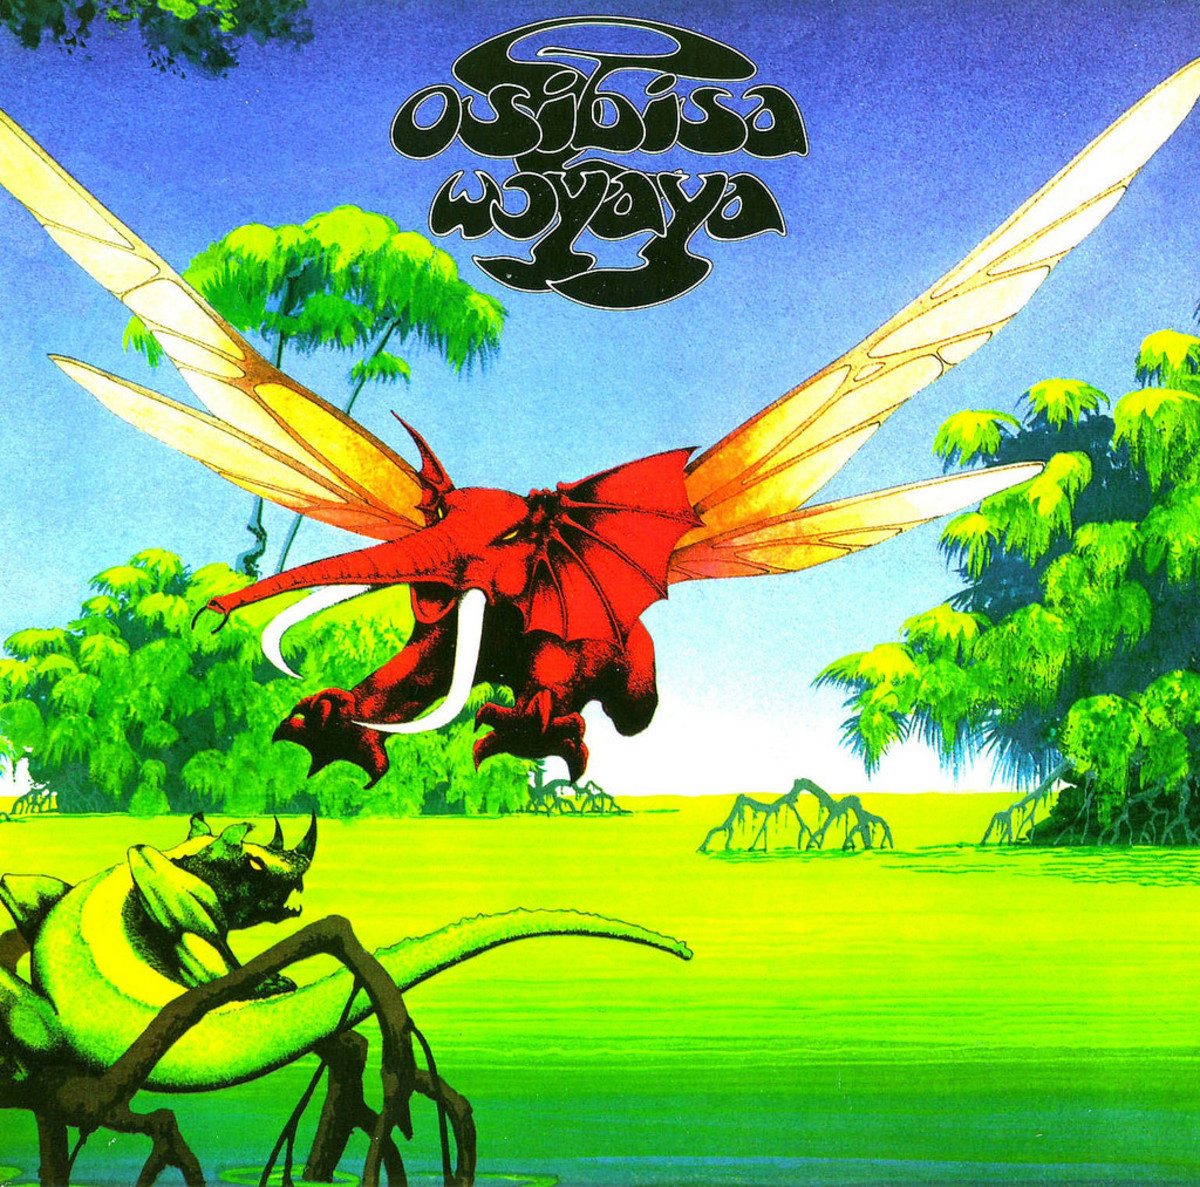 "Osibisa ""Woyaya"" MCA Records MDKS 8005 12"" LP Vinyl Record, UK Pressing (1971) Gatefold Album Cover Art by  Roger Dean"